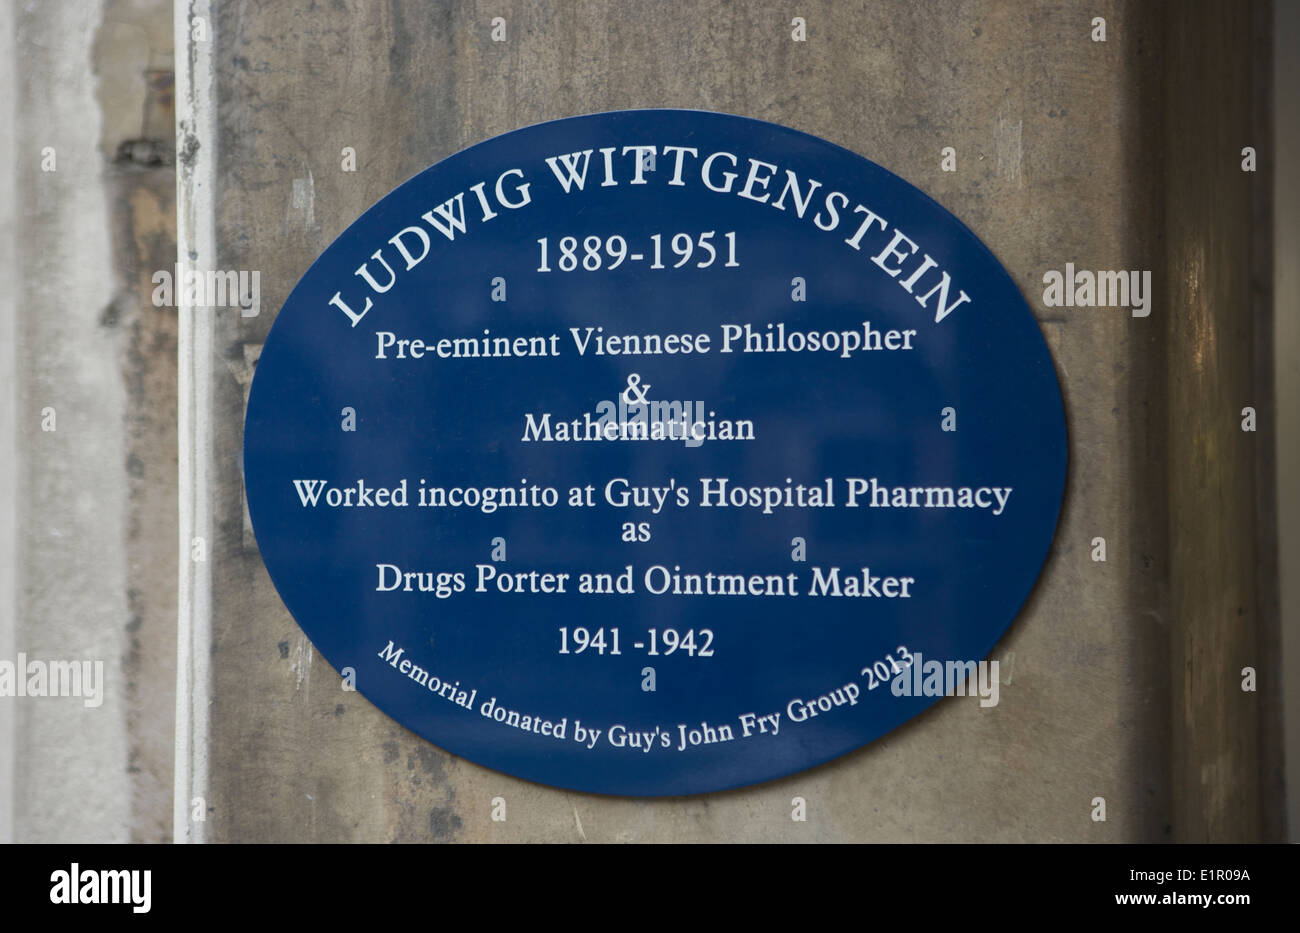 Ludwig Wittgenstein worked incognito at Guy's Hospital pharmacy - Stock Image